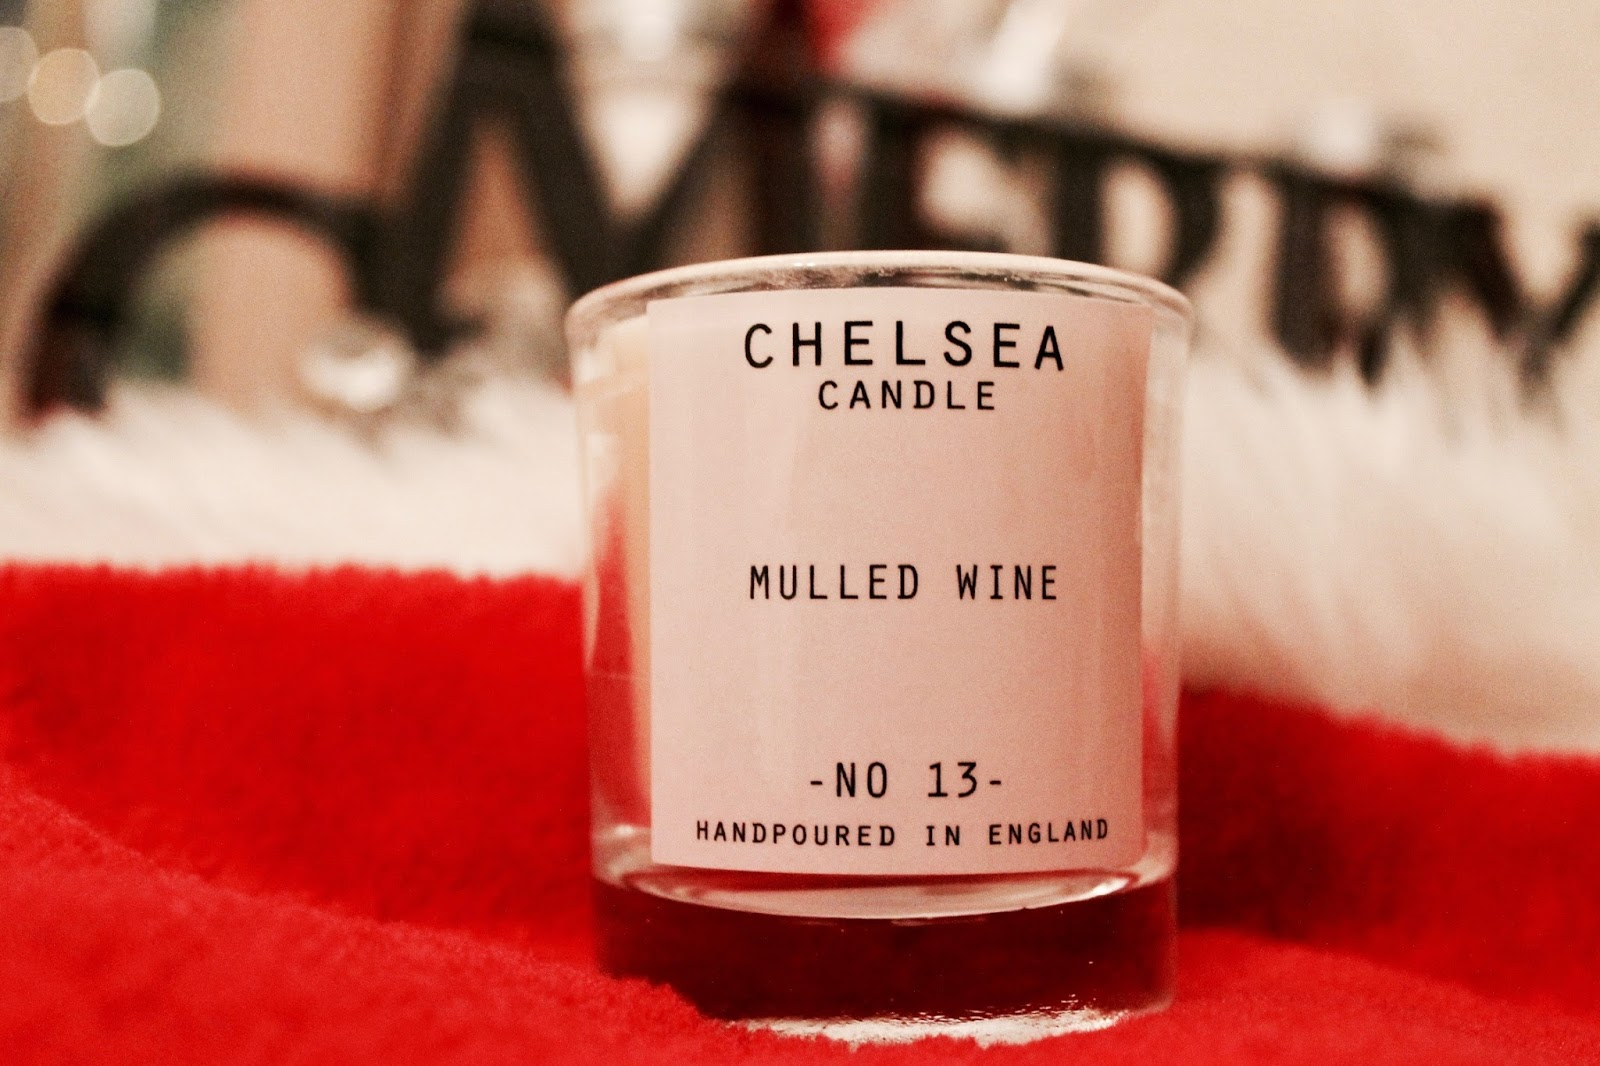 Chelsea Candle Mulled Wine